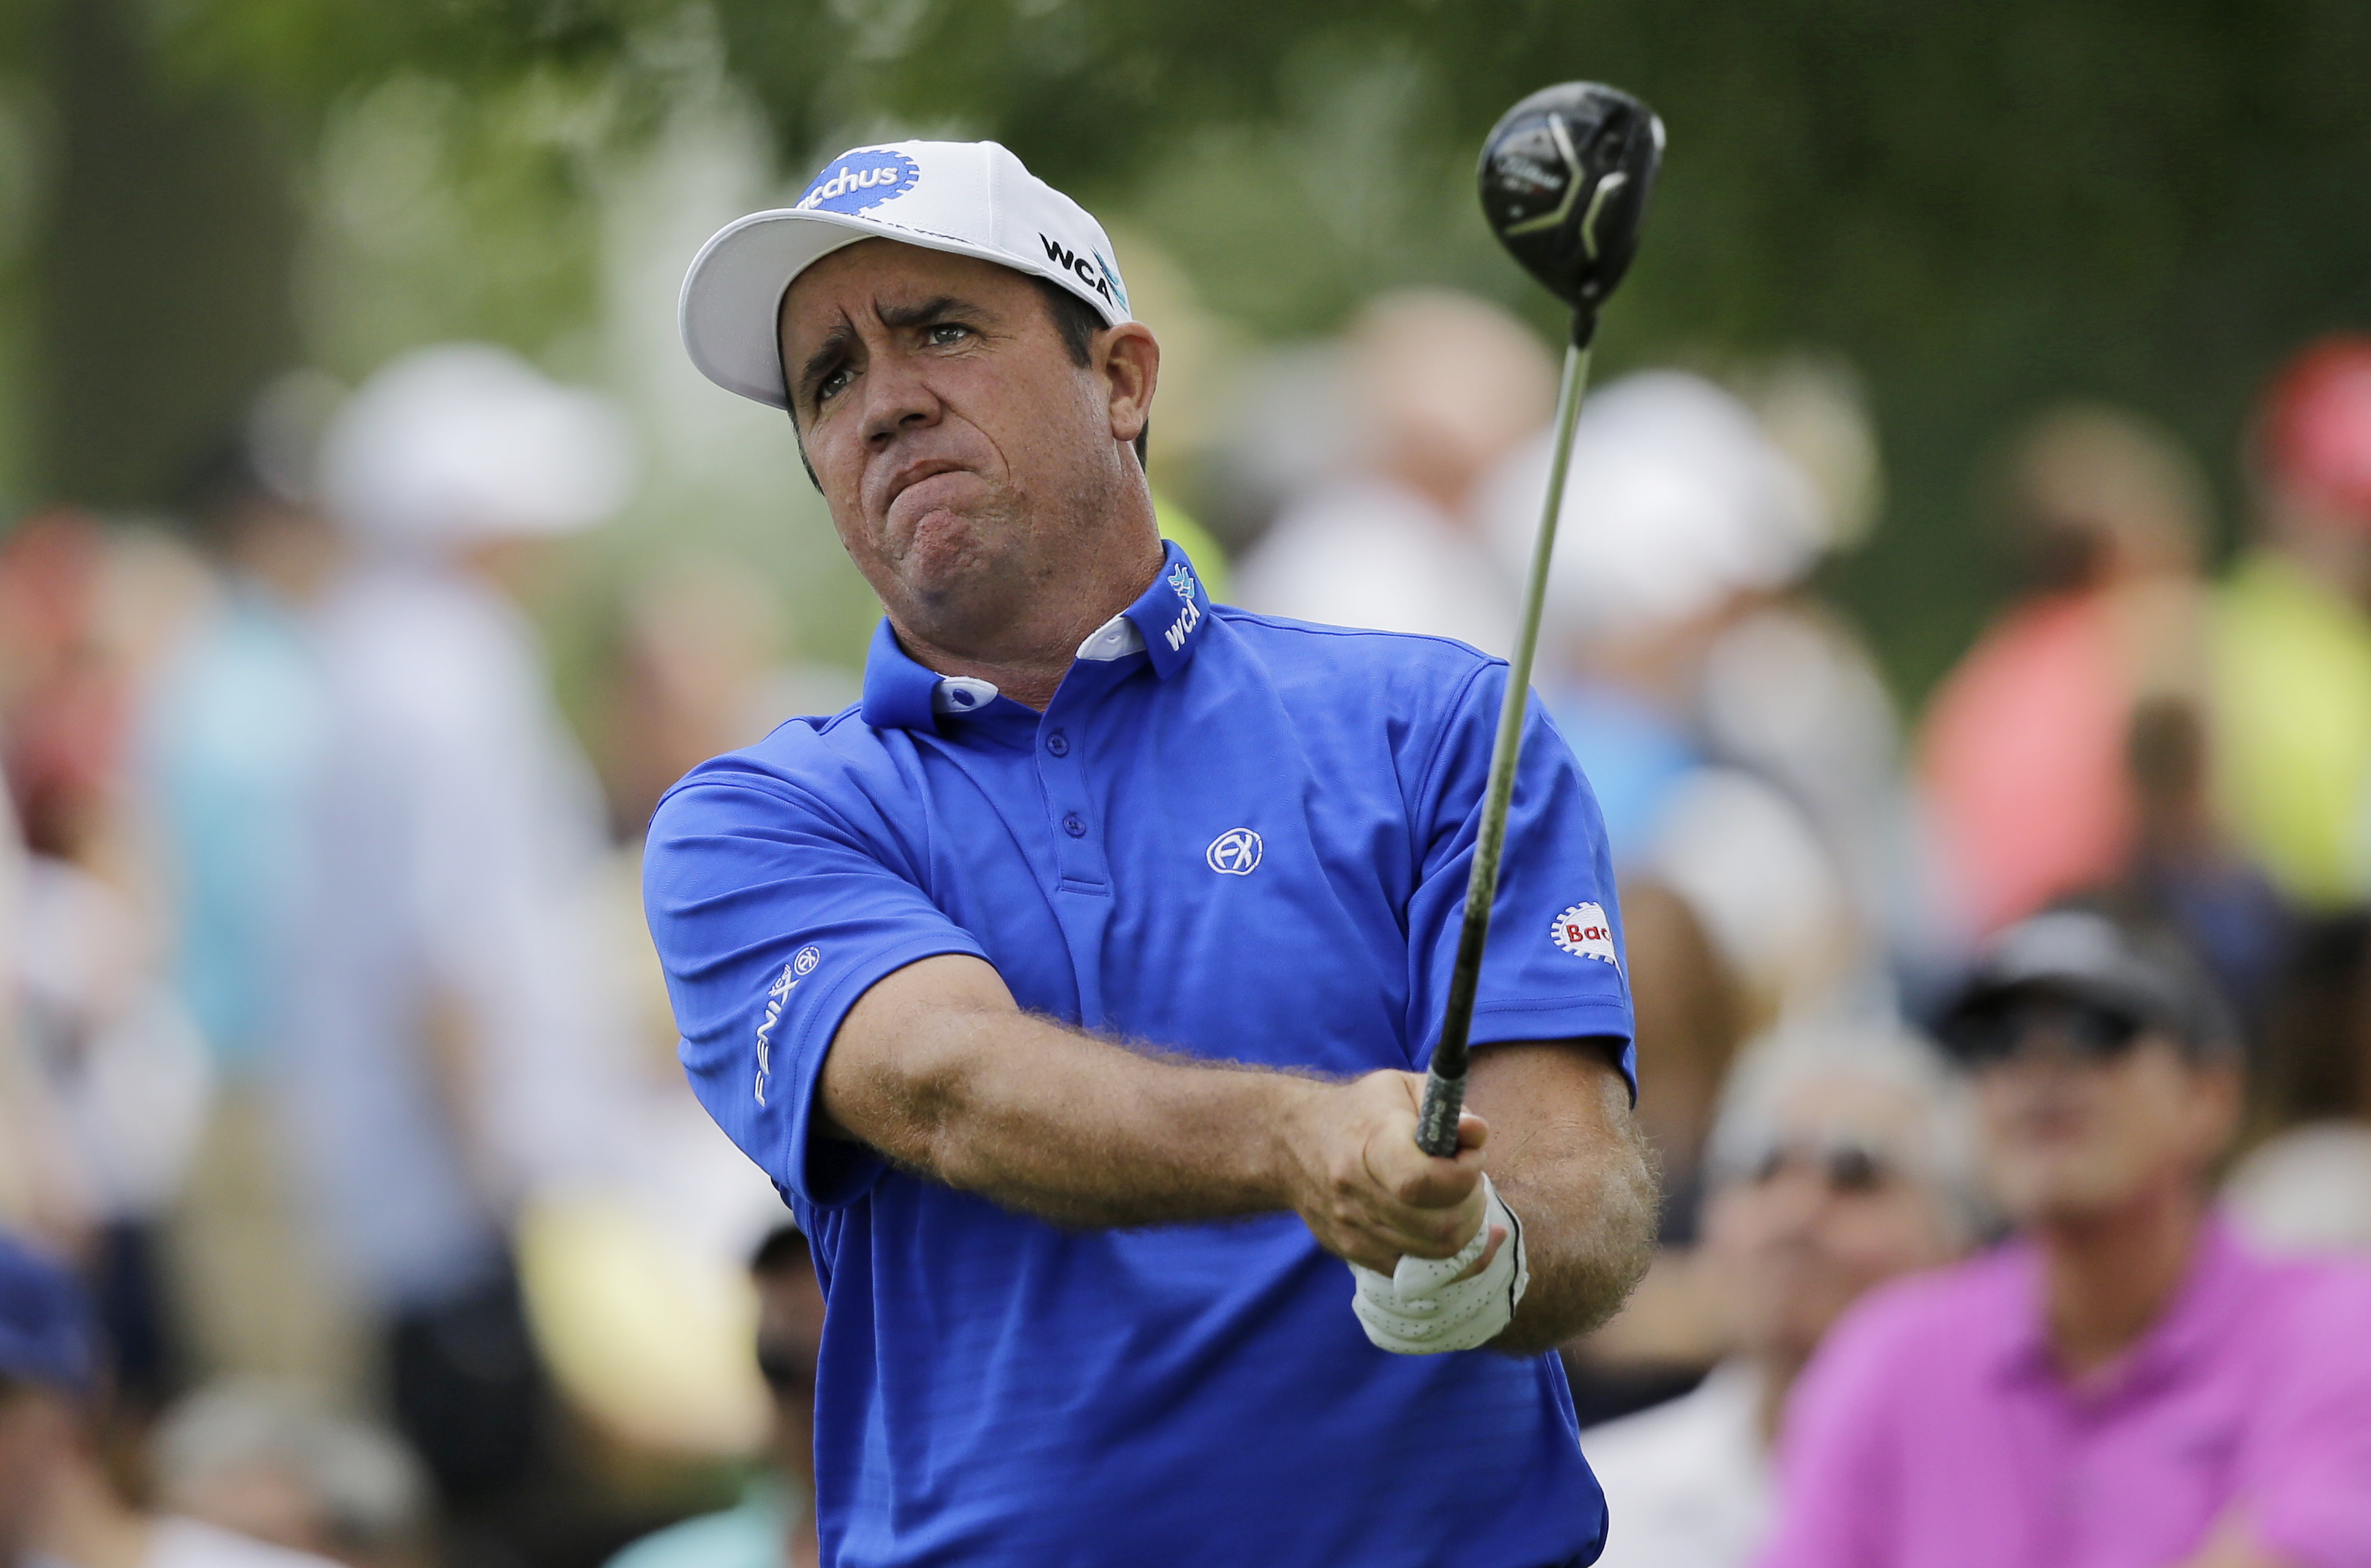 Scott Hend, from Australia, tees off on the 18th hole during the third round of the Bridgestone Invitational golf tournament at Firestone Country Club, Saturday, Aug. 5, 2017, in Akron, Ohio. (AP Photo/Tony Dejak)